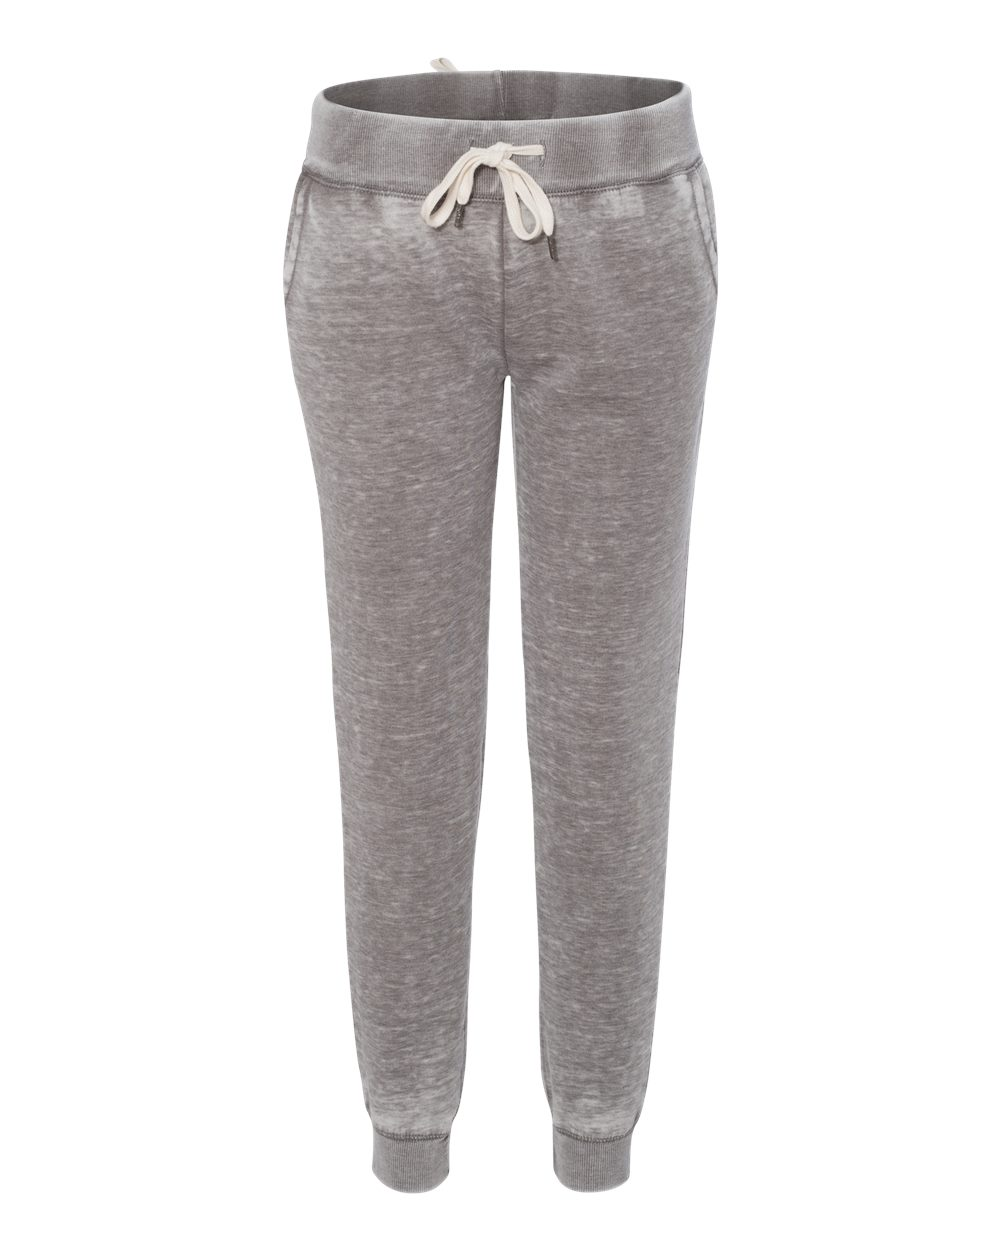 J.America 8944 - Women's Zen Fleece Jogger